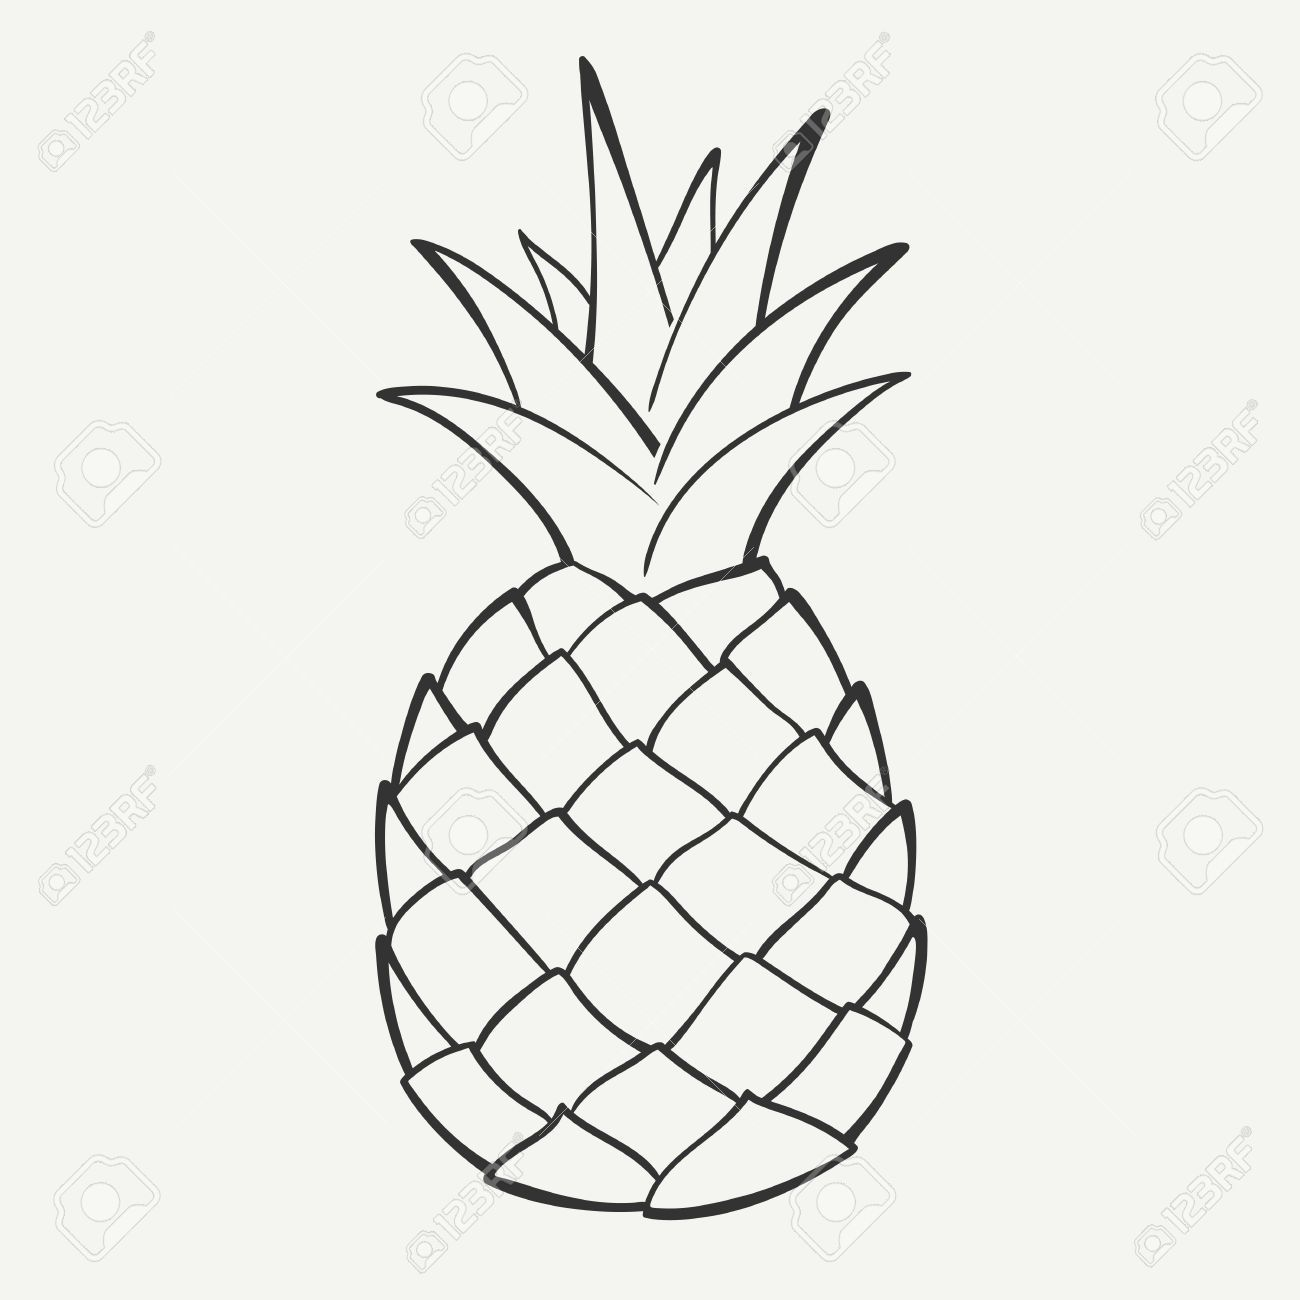 Outline Black And White Image Of A Pineapple Royalty Free Cliparts ... for Clipart Pineapple Black And White  111ane